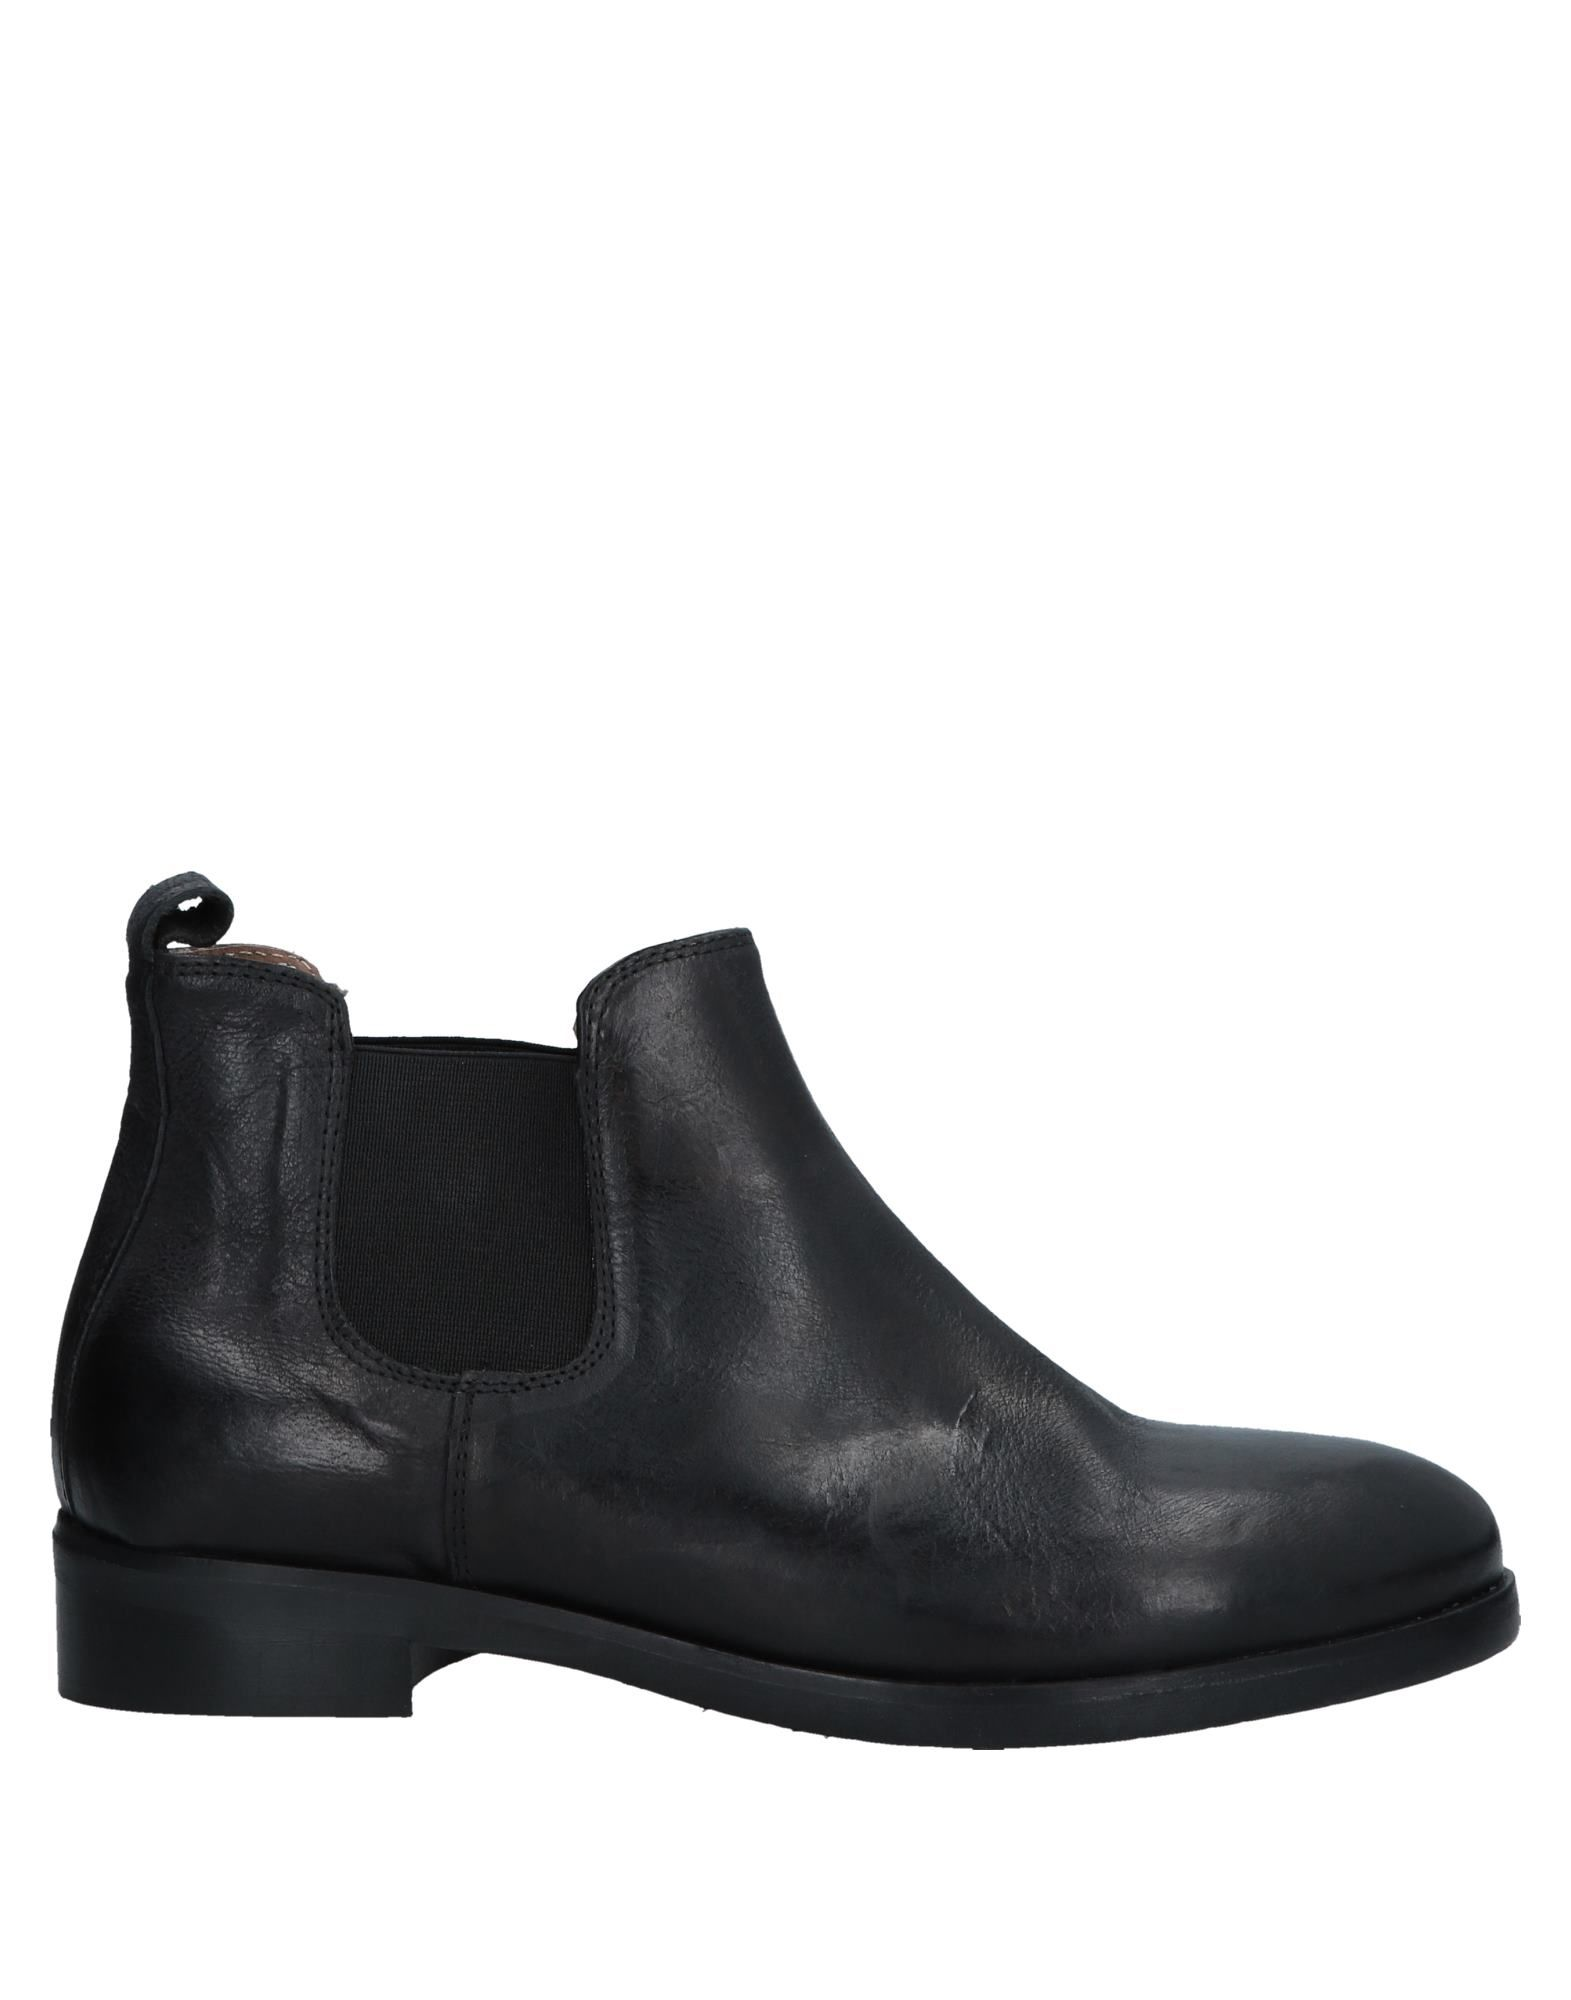 Chelsea Boots Köe Donna - 11550471OK